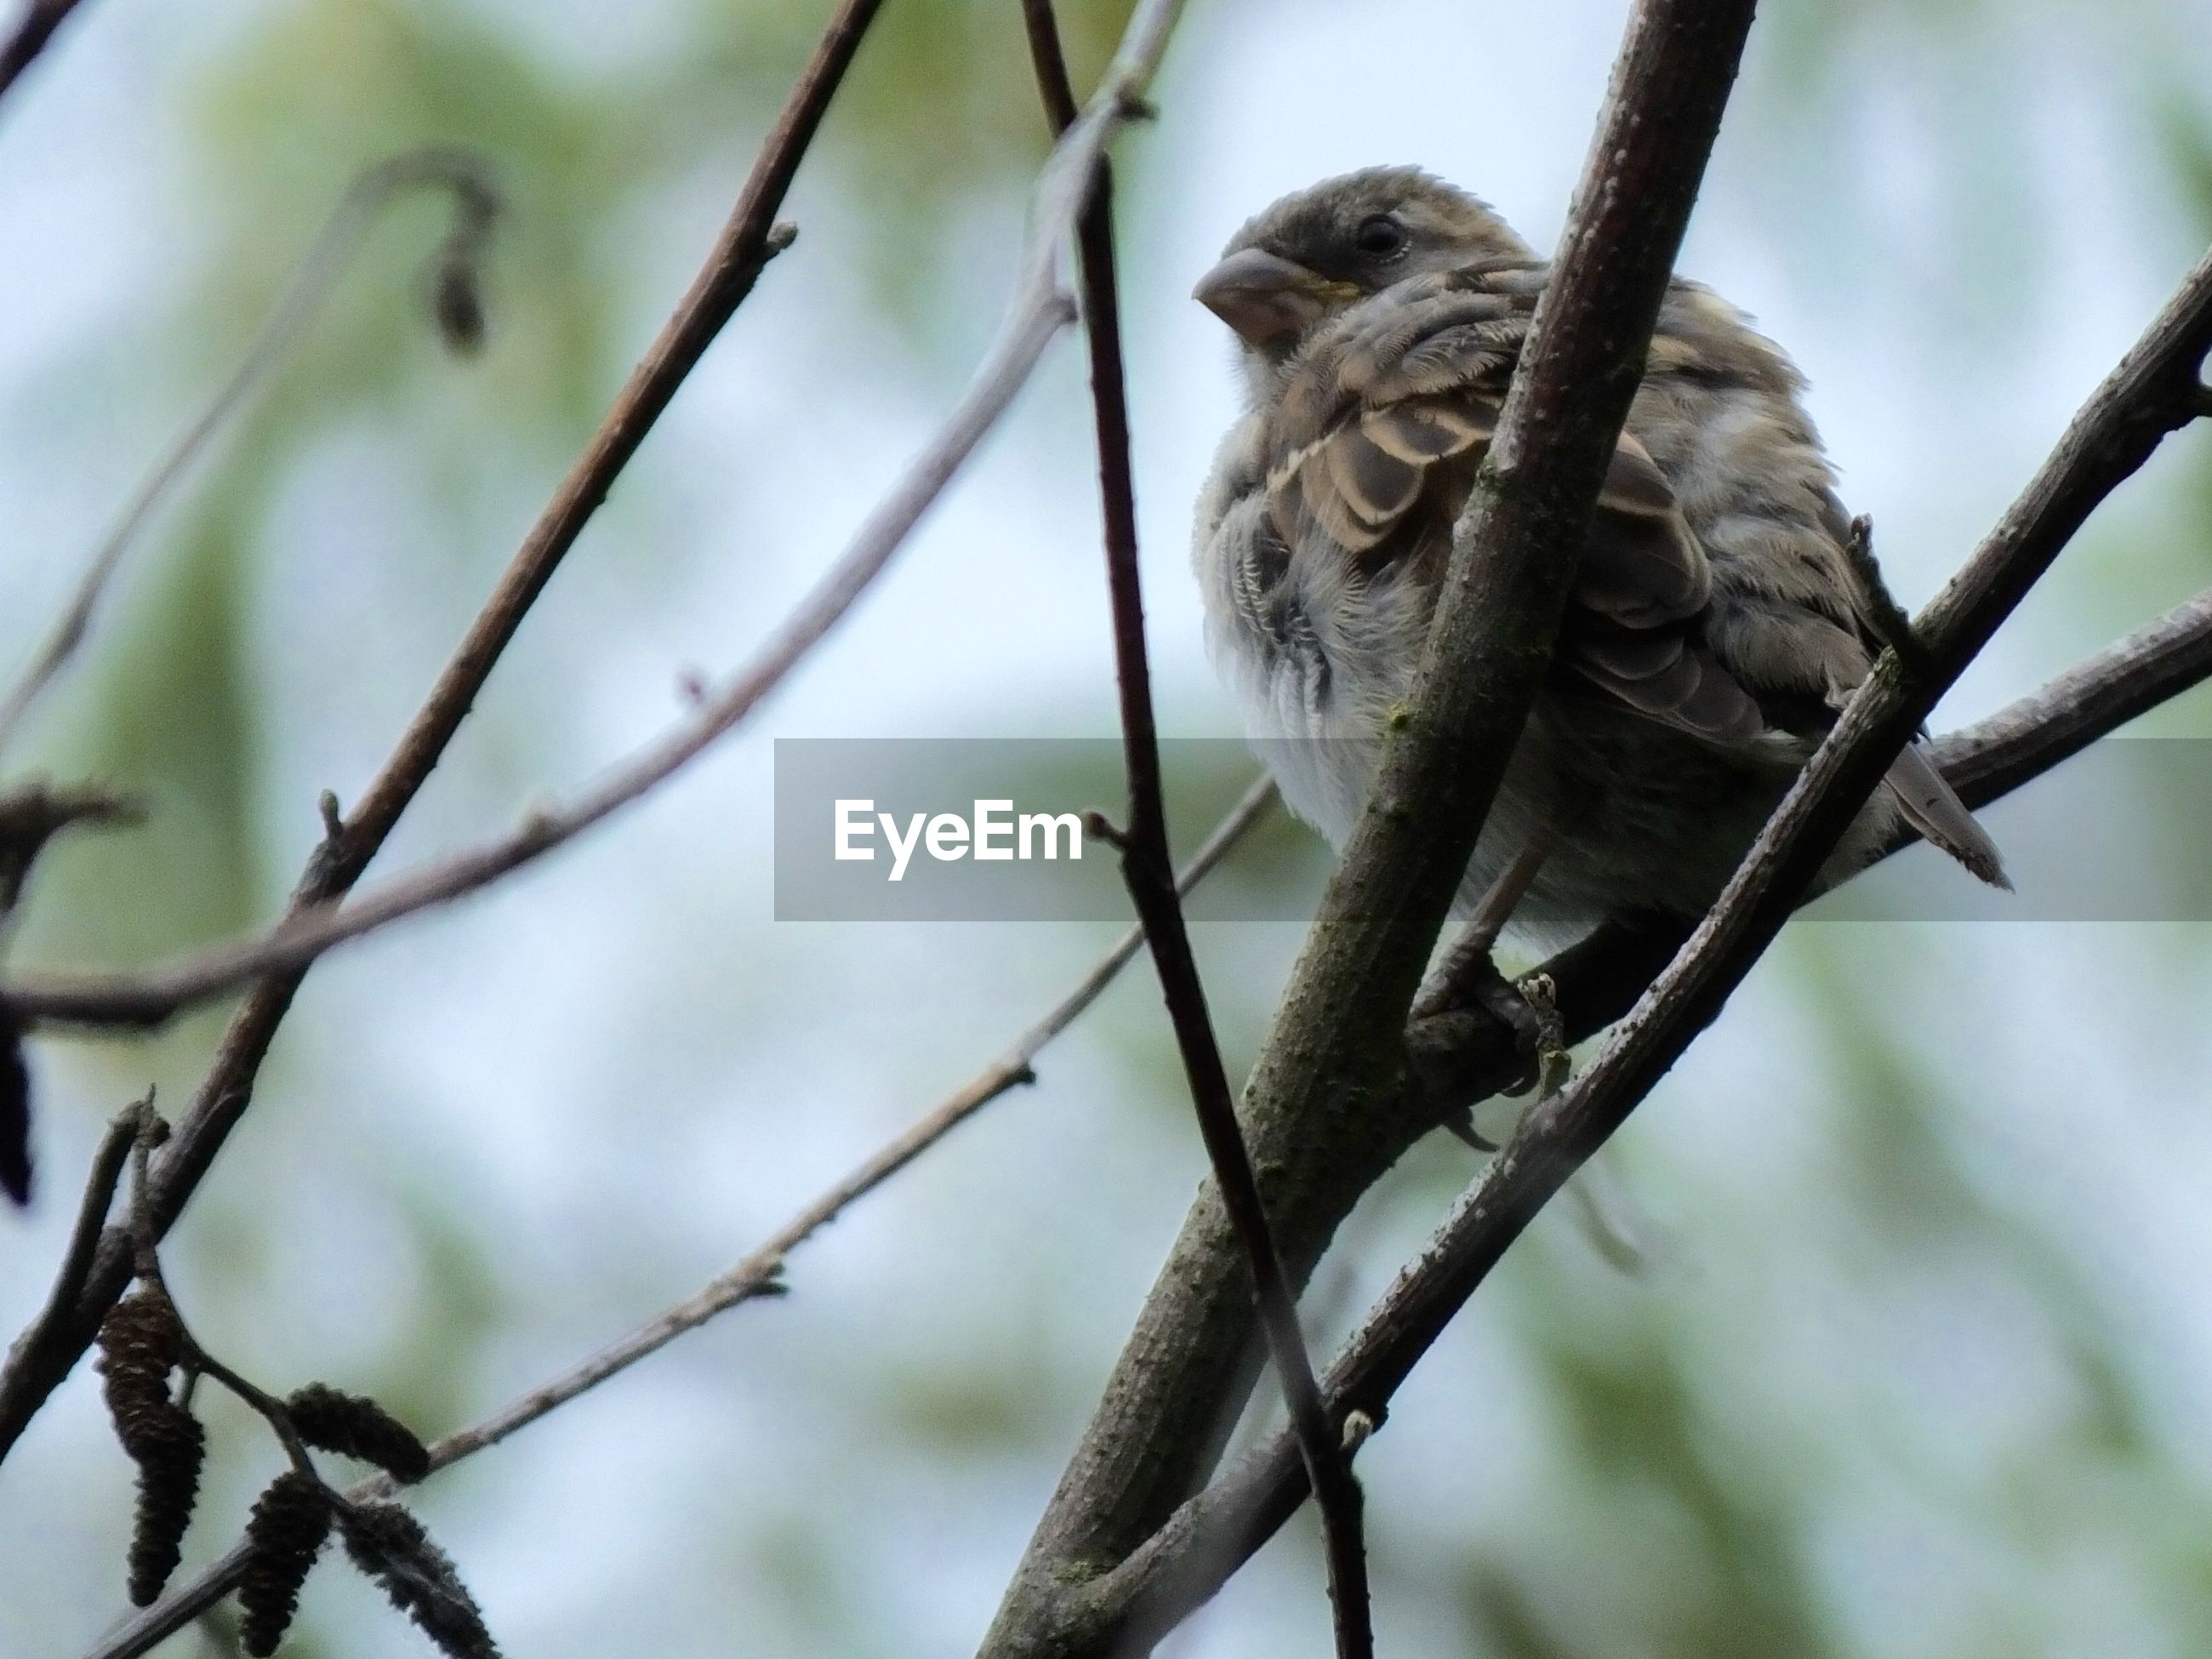 LOW ANGLE VIEW OF BIRD ON BRANCH AGAINST BLURRED PLANTS